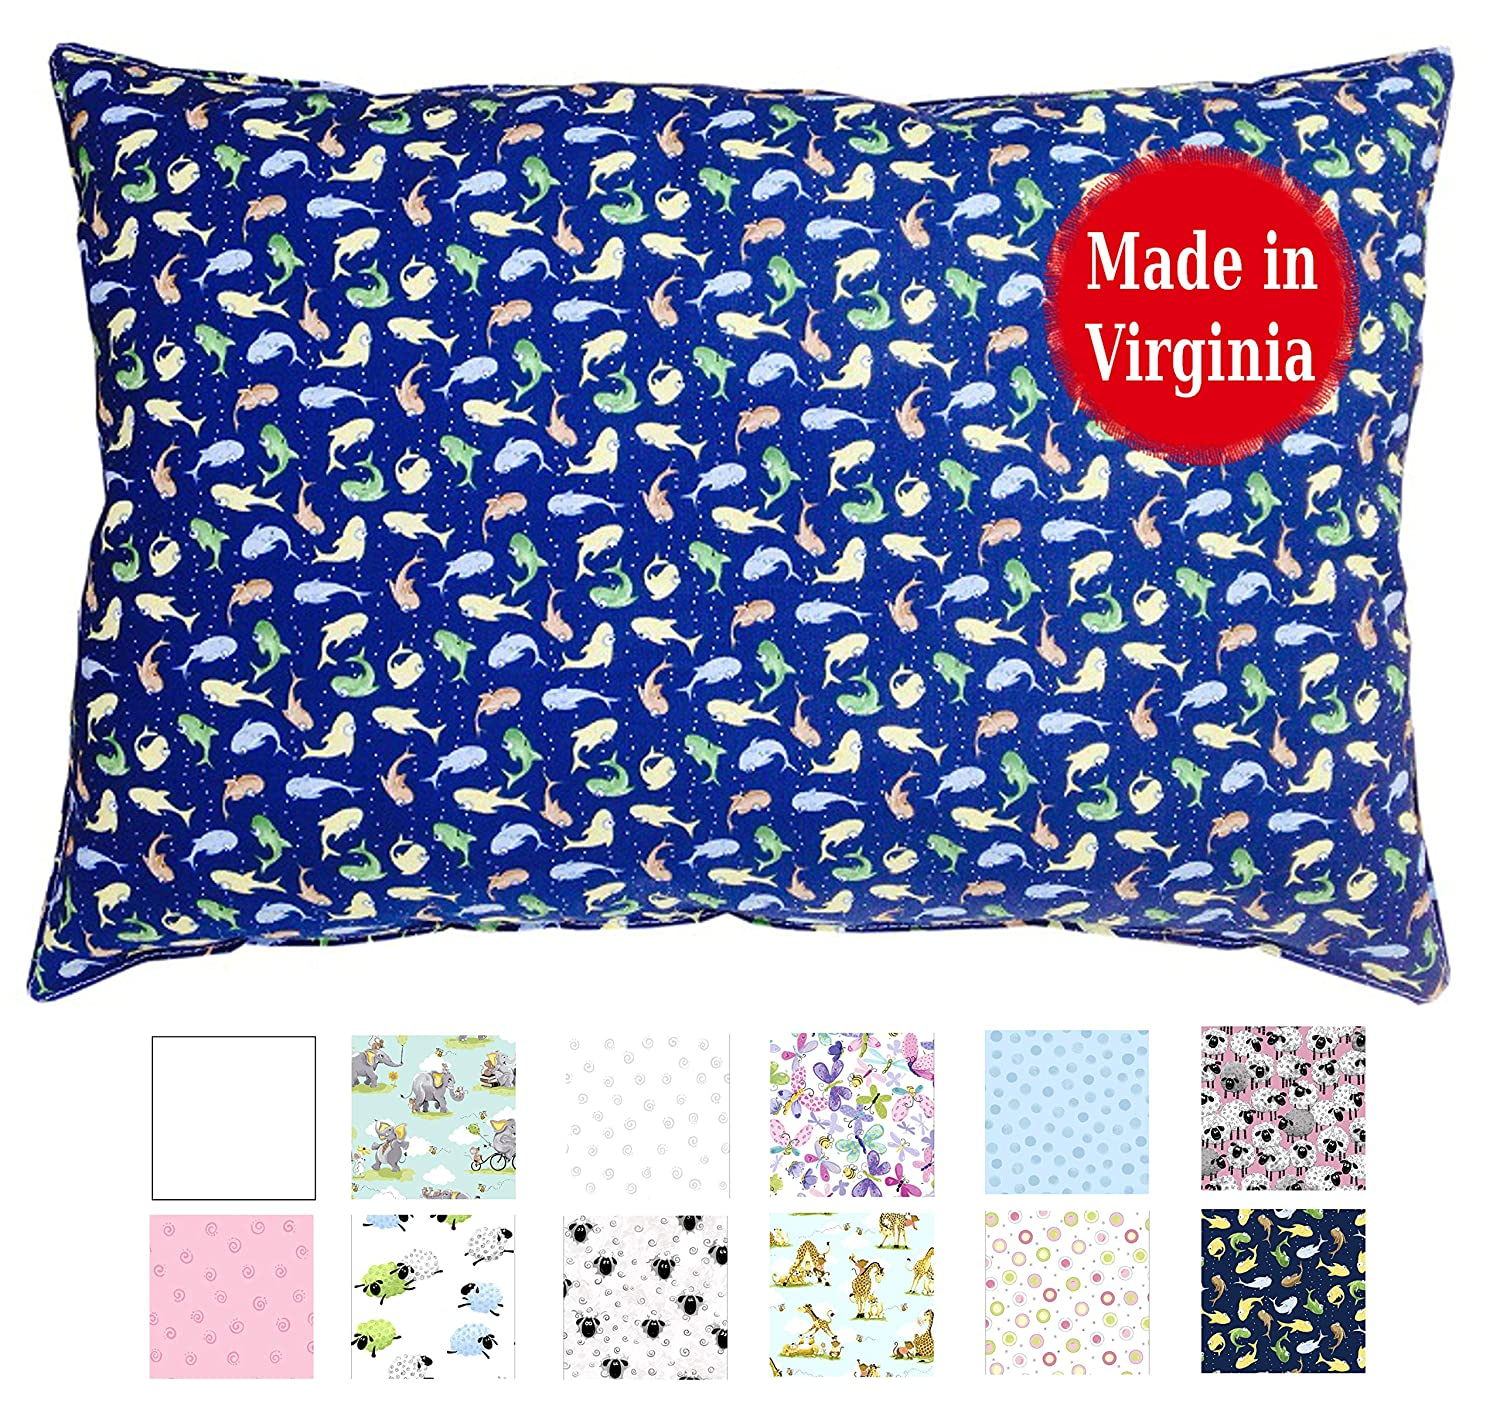 Envelope Style Elephants Made in Virginia by A Little Pillow Company 100/% Cotton Percale Fits 13x18 Pillows Toddler Pillowcase Cute Designs